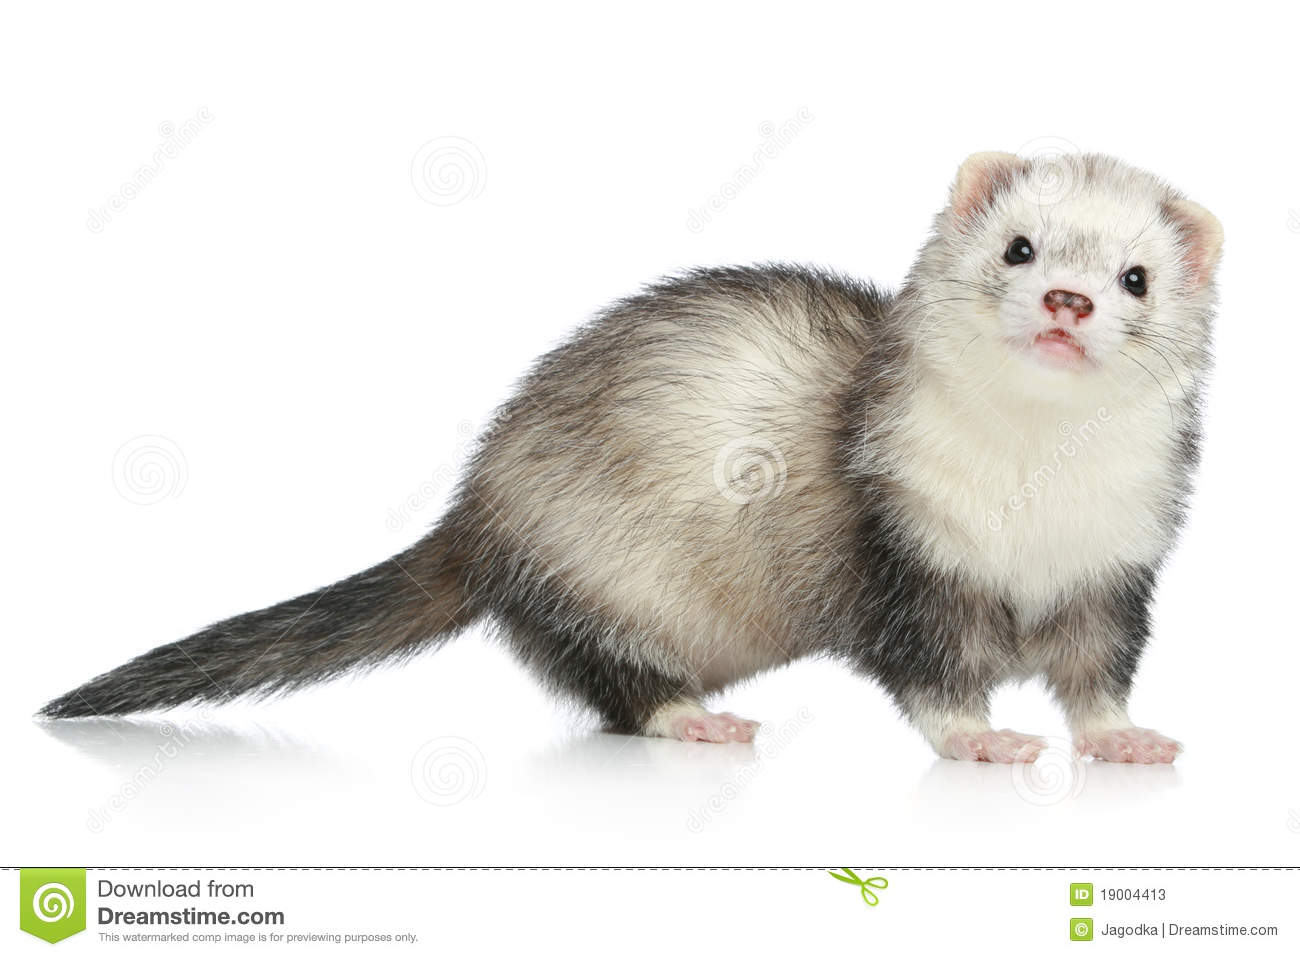 Ferret On A White Background Stock Photos - Image: 19004413